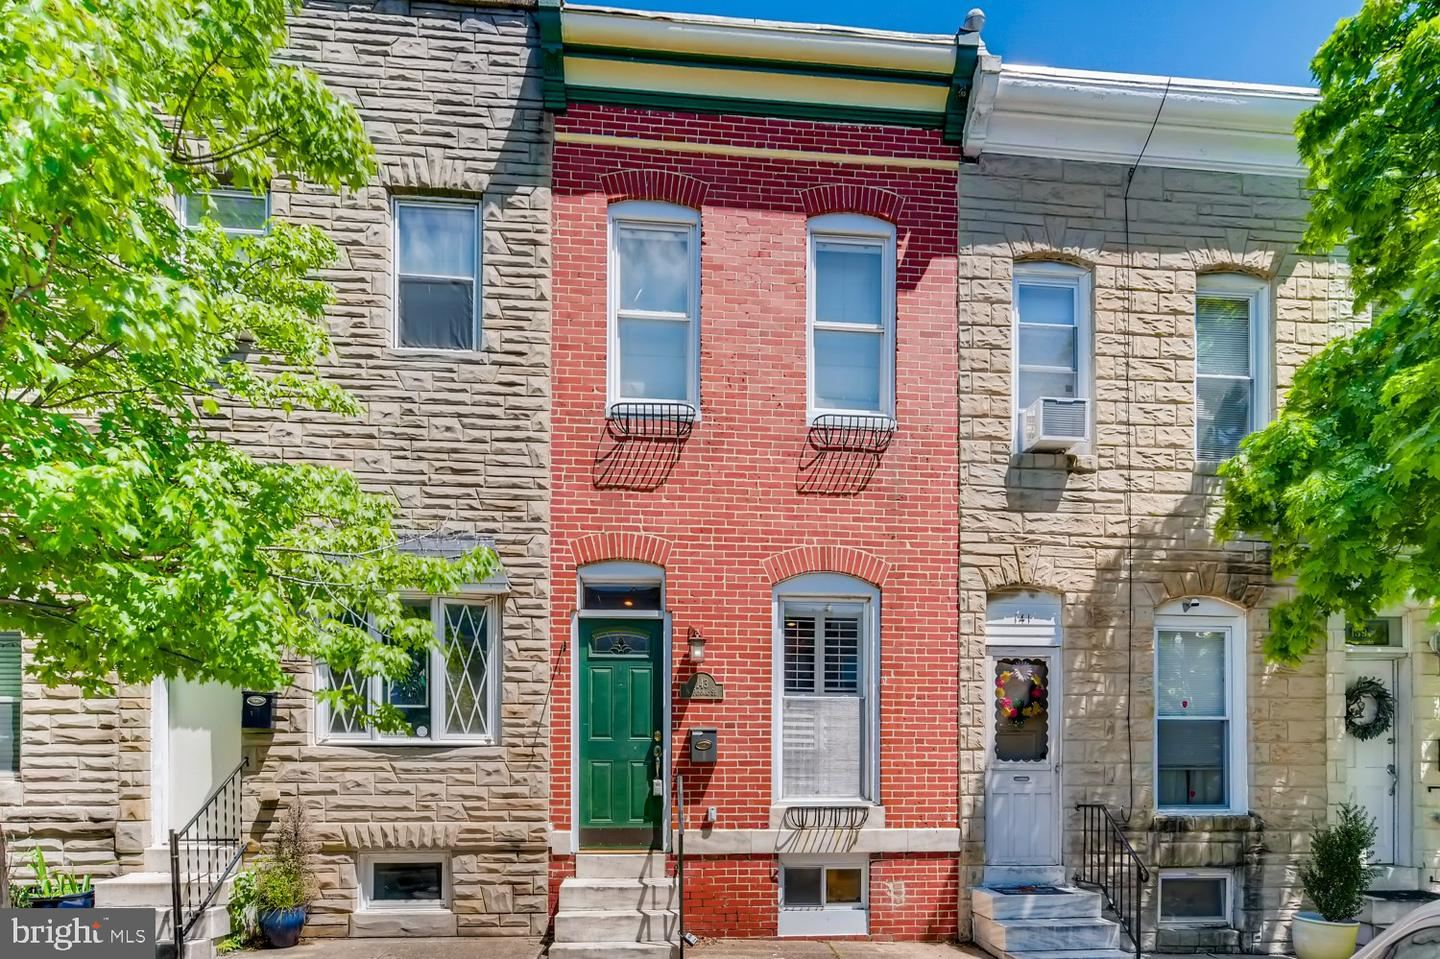 143 N POTOMAC ST, Baltimore, MD 21224 - MLS#: MDBA549974